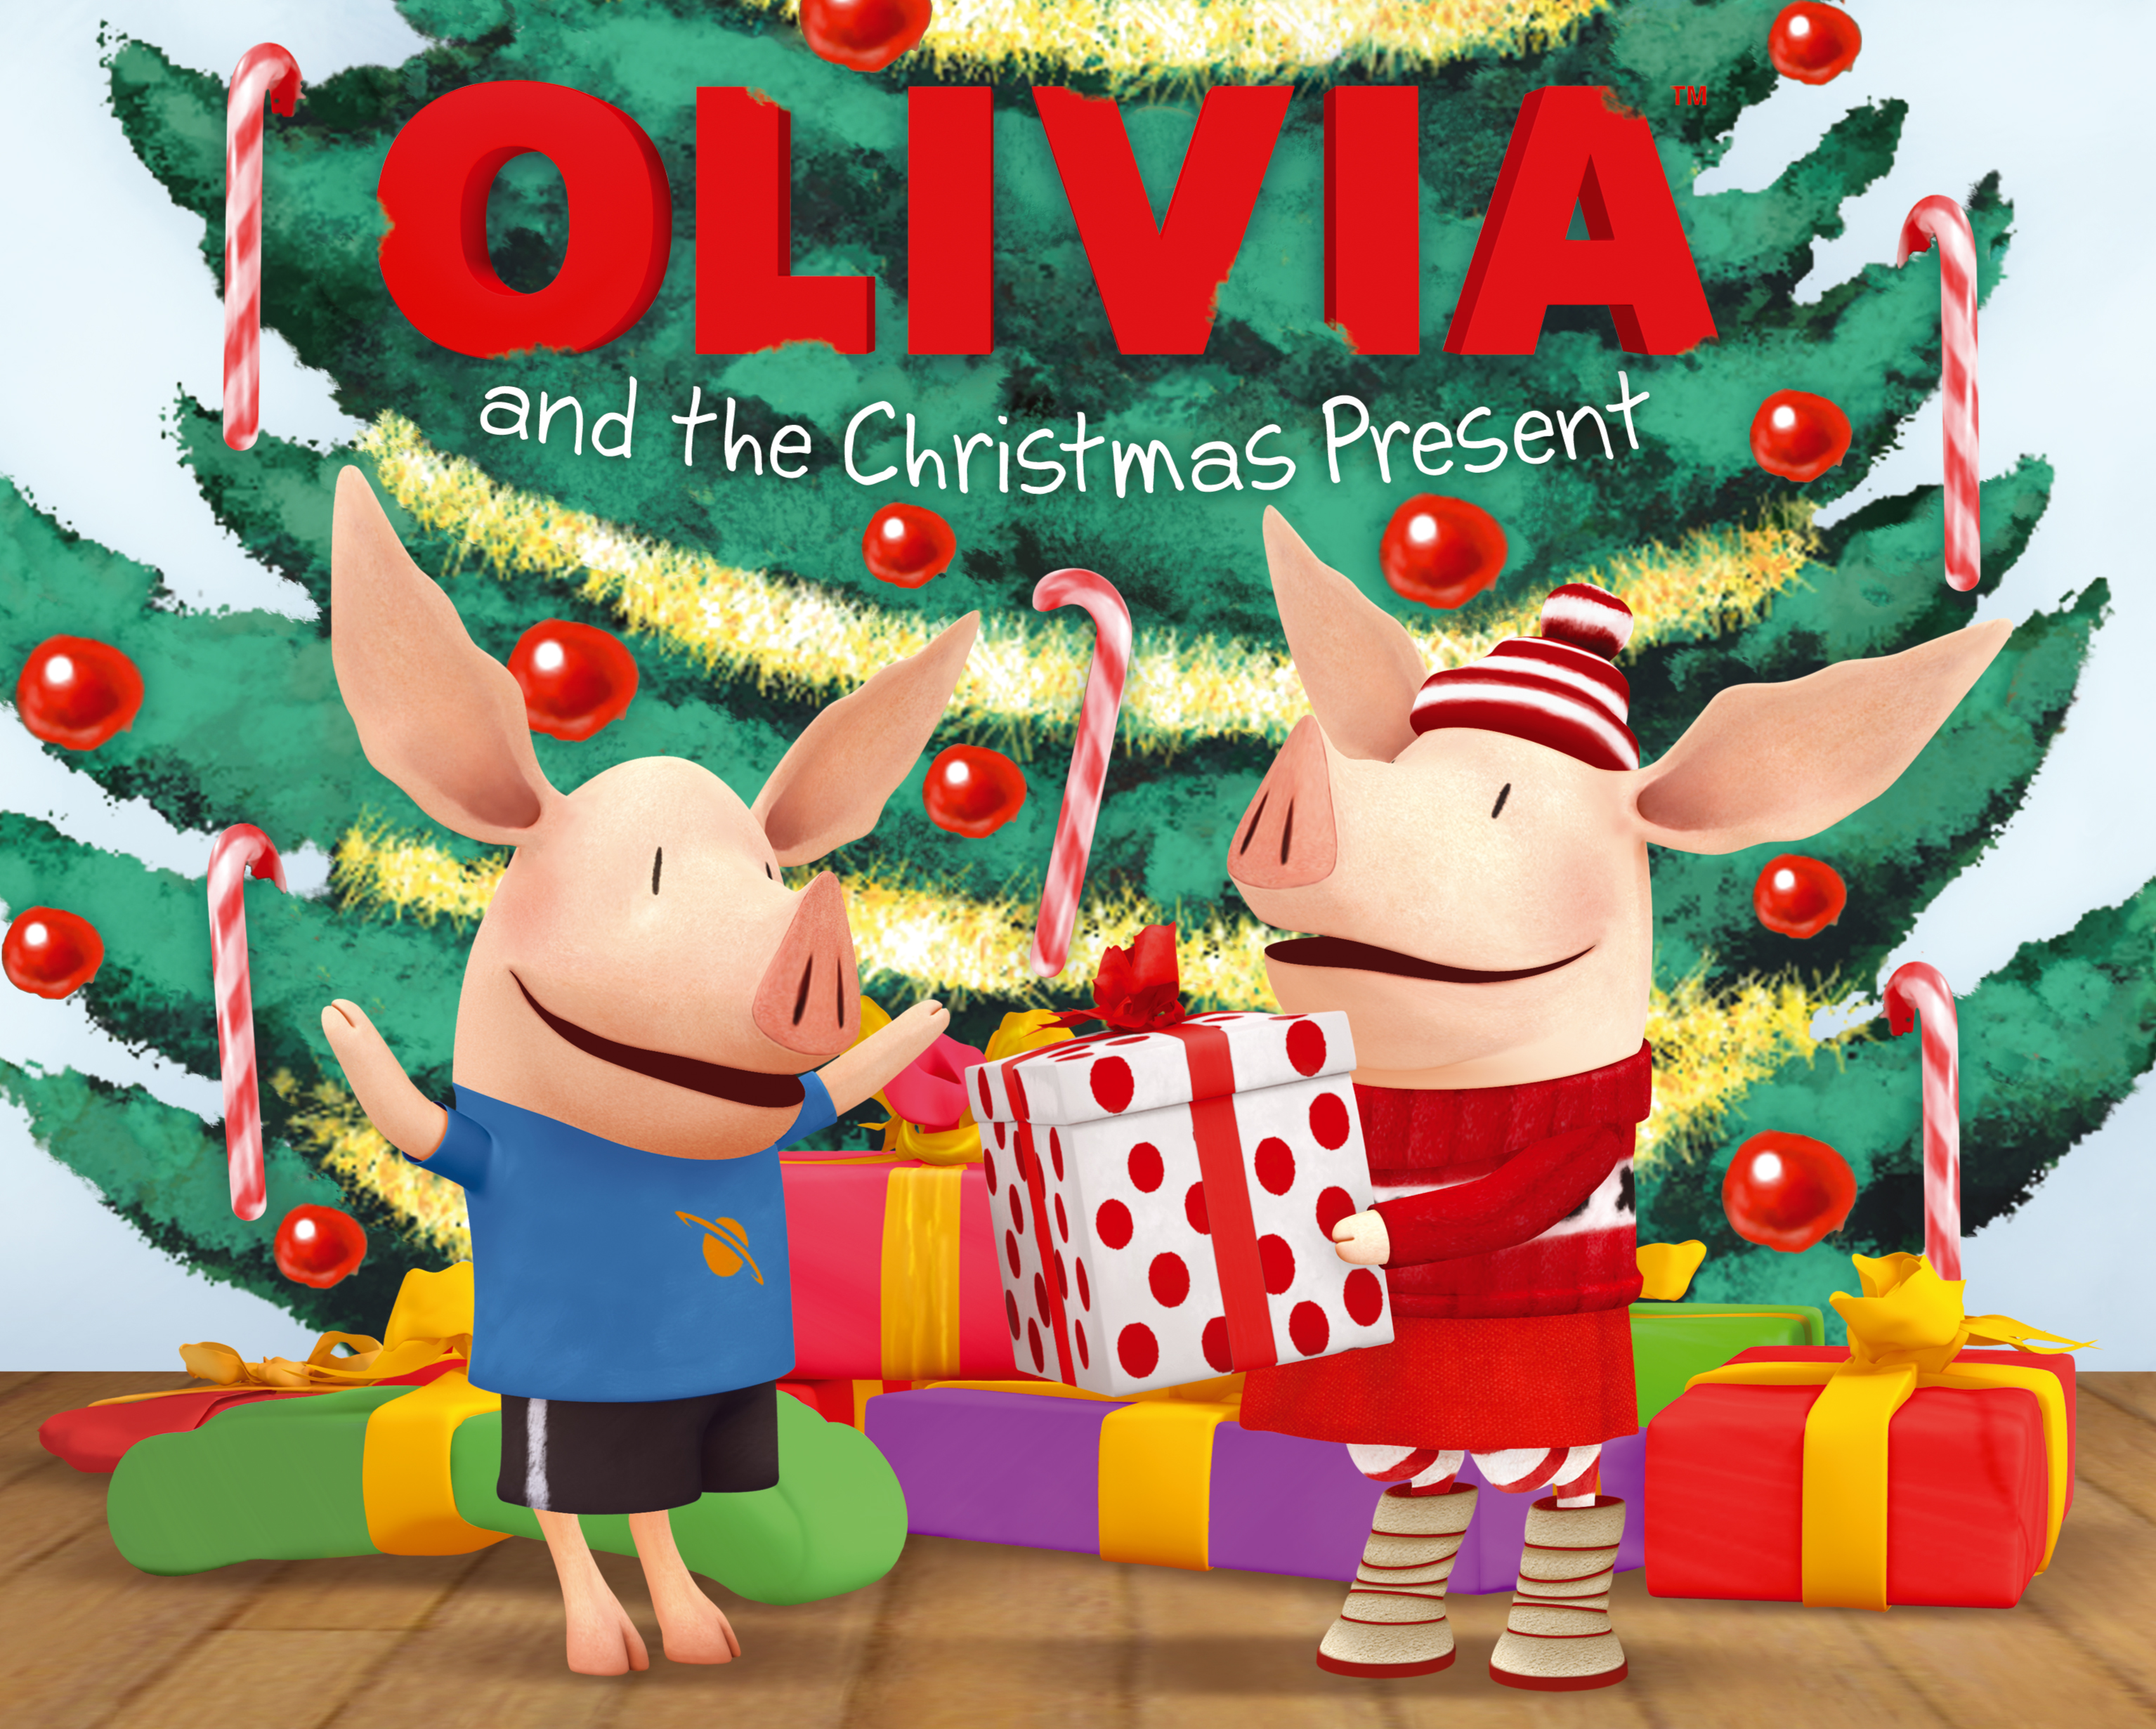 cvr9781442436244 9781442436244 hr olivia and the christmas present - Best Christmas Present